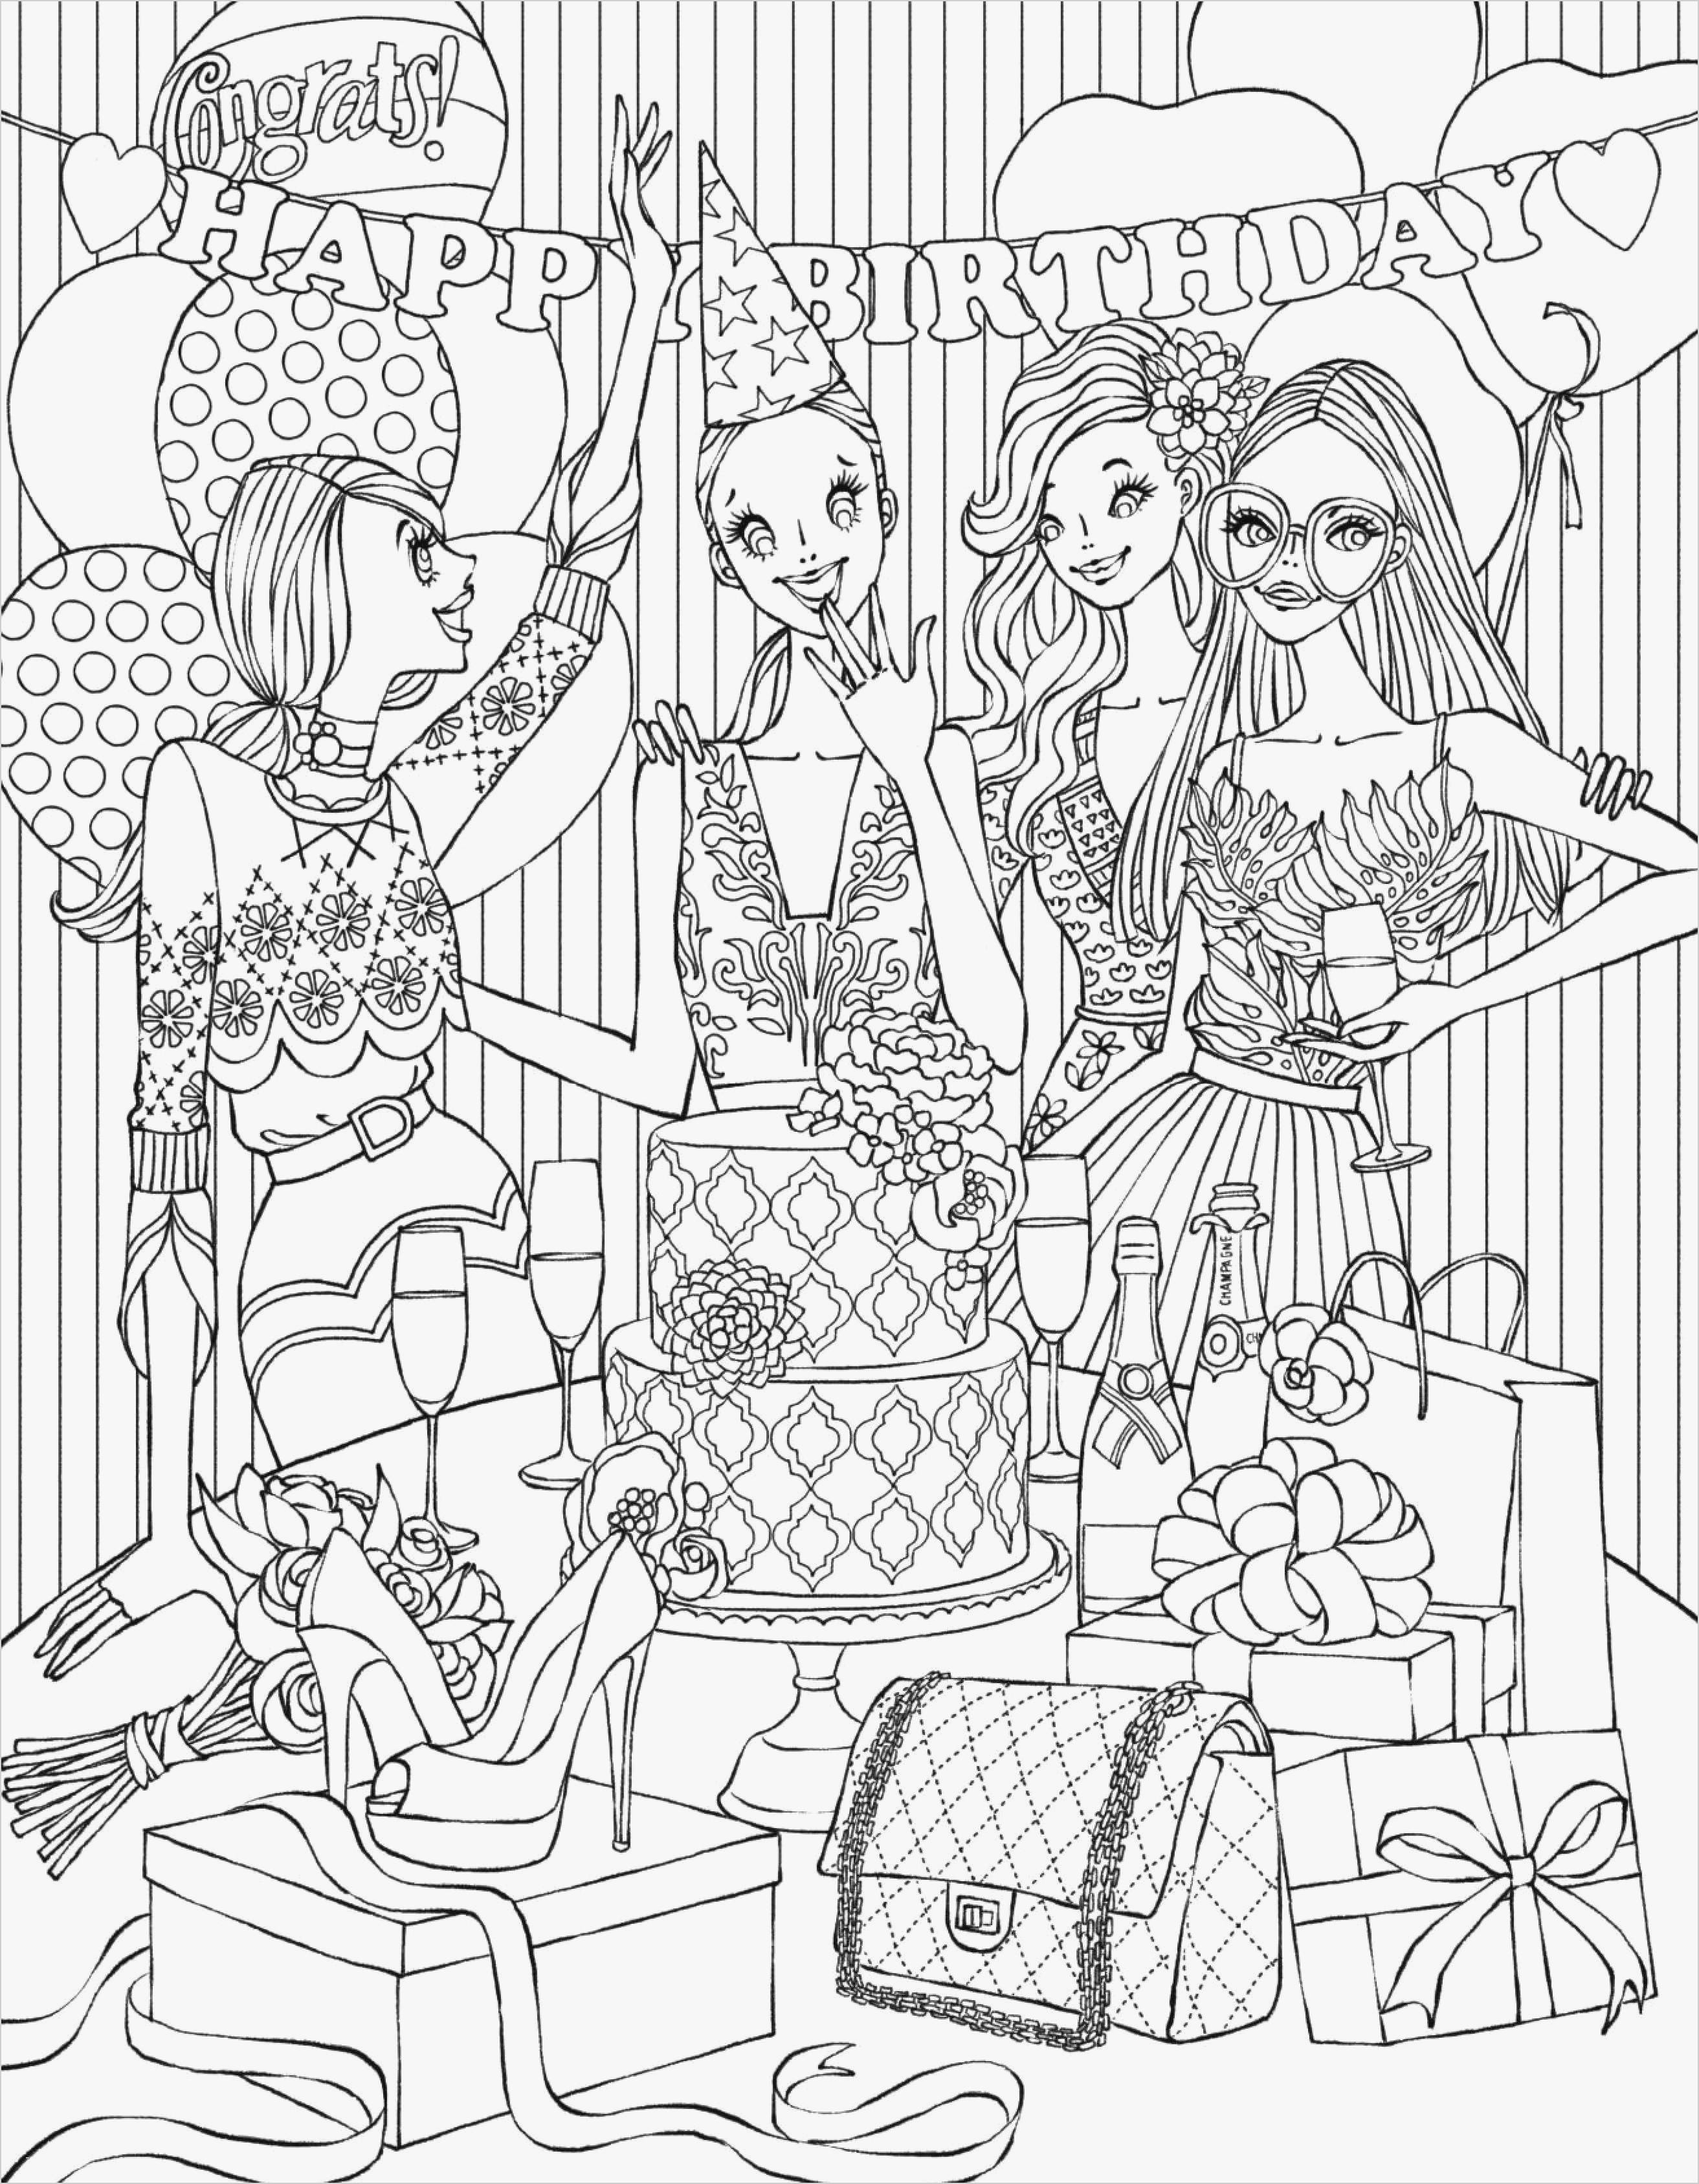 Fall Coloring Pages For Adults Free Collection Of 49 Fall Coloring Pages Adults Download Them